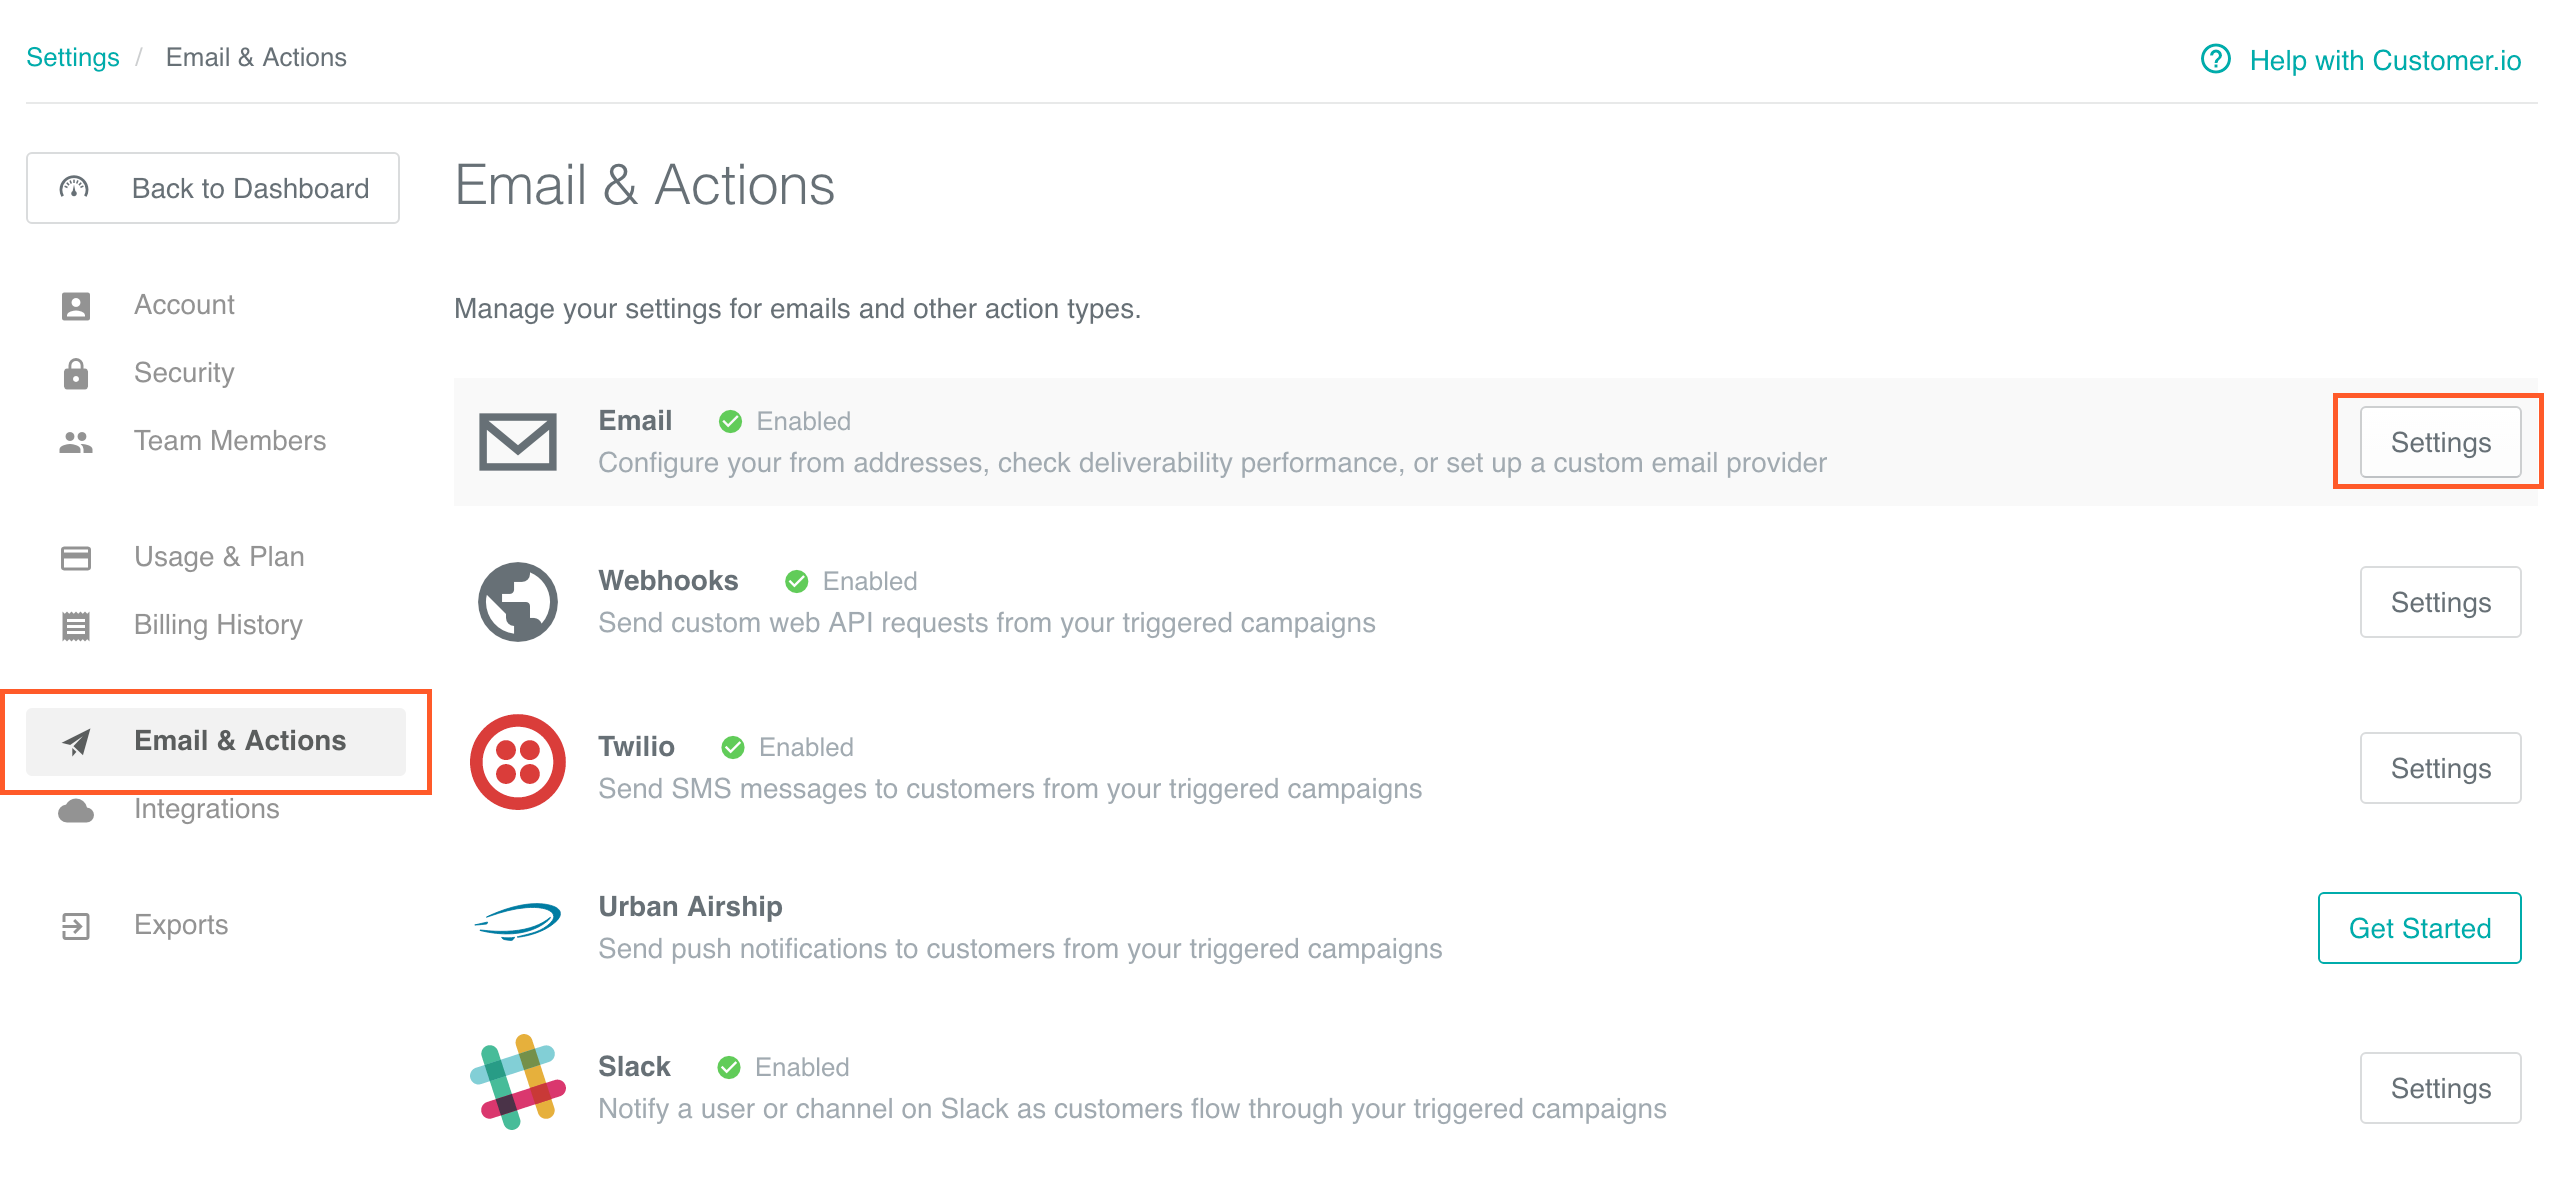 Account - Email Deliverability